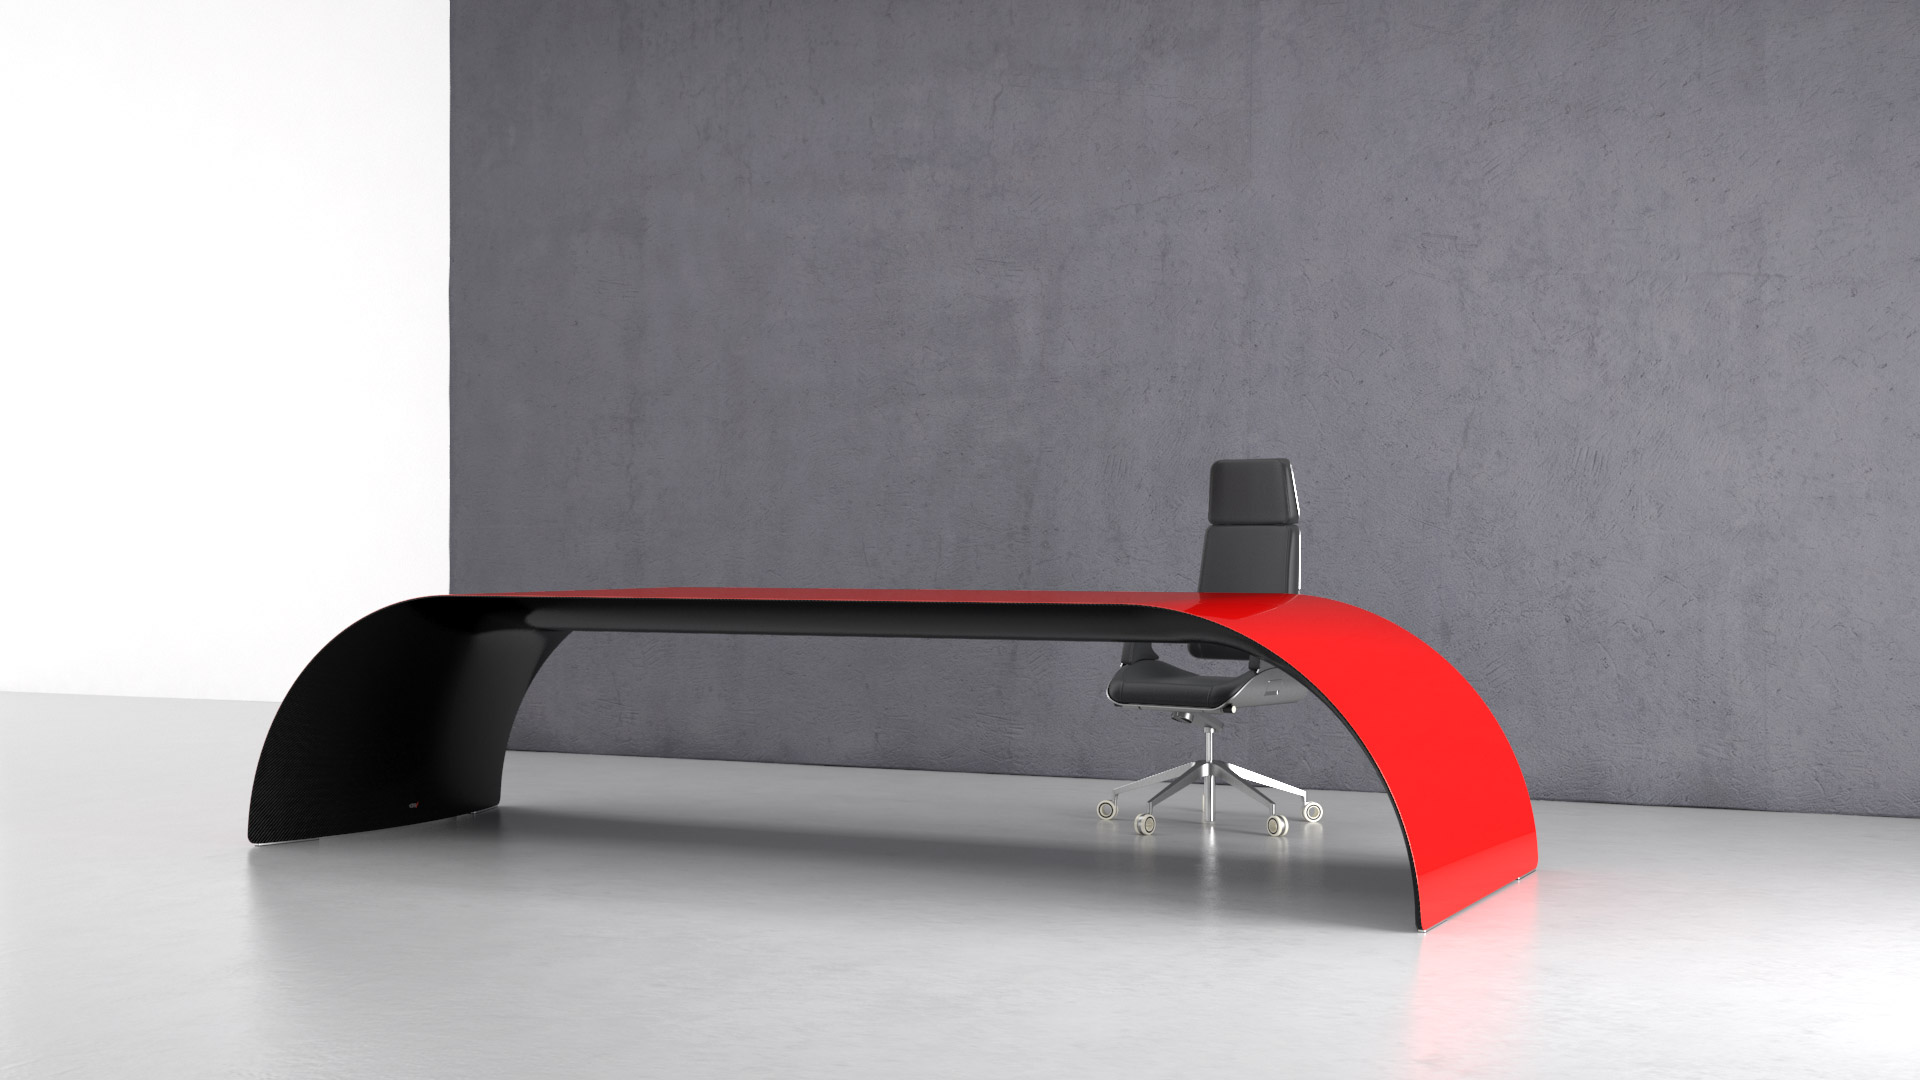 CEO /carbon. Executive desk made of carbon fiber, Kevlar and stainless steel. Painted glossy red on top, transparent glossy on the bottom side.